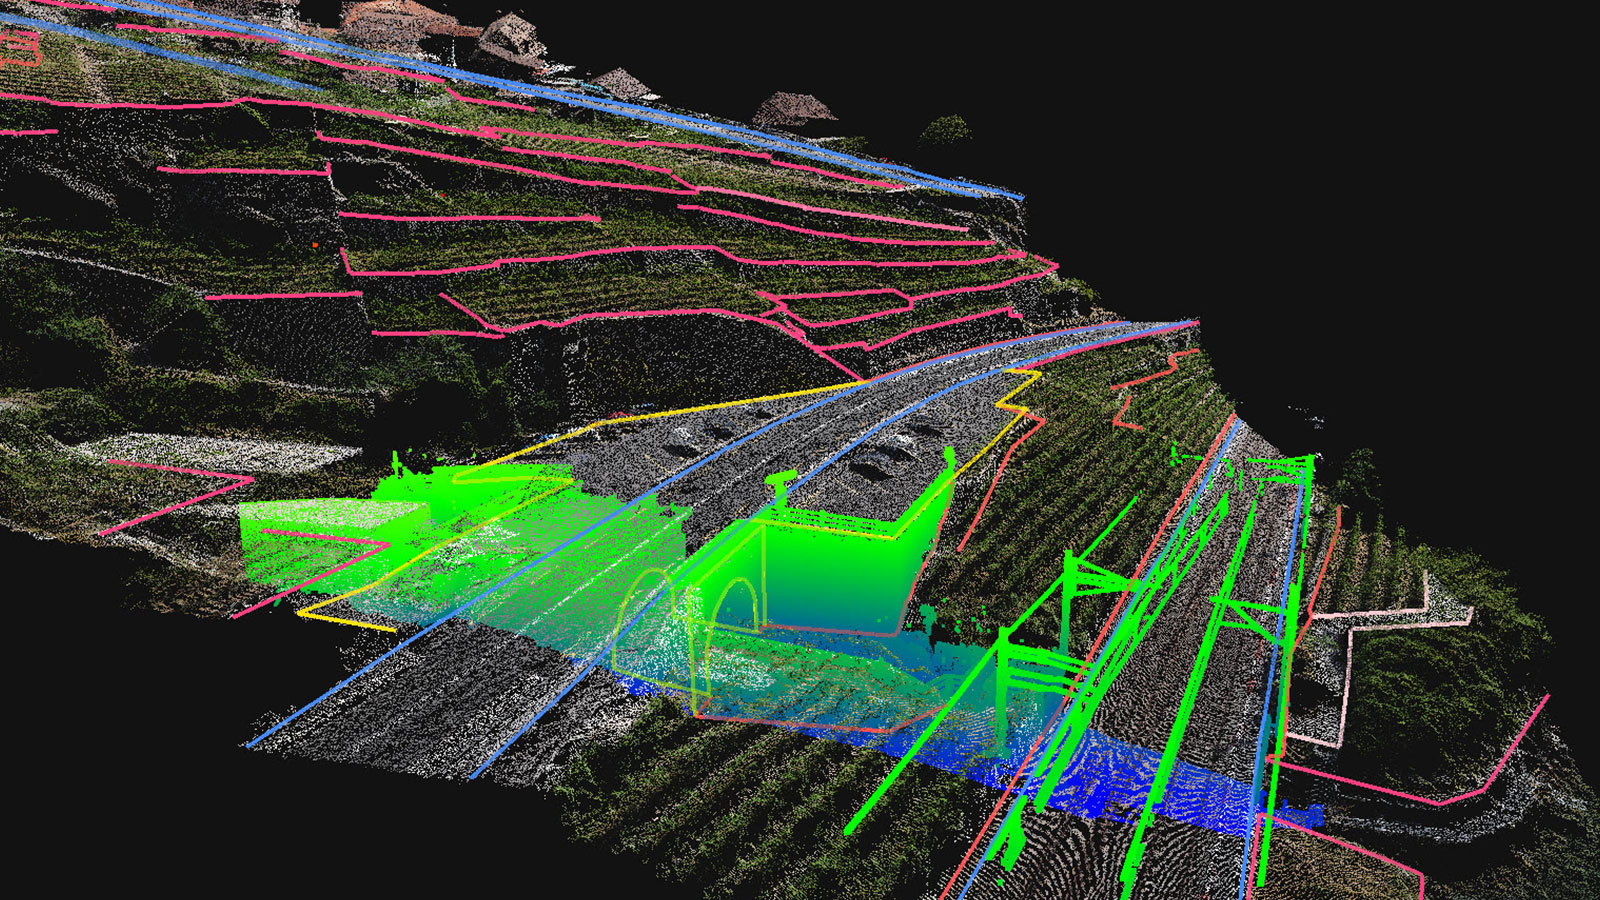 A point cloud in Pix4Dsurvey